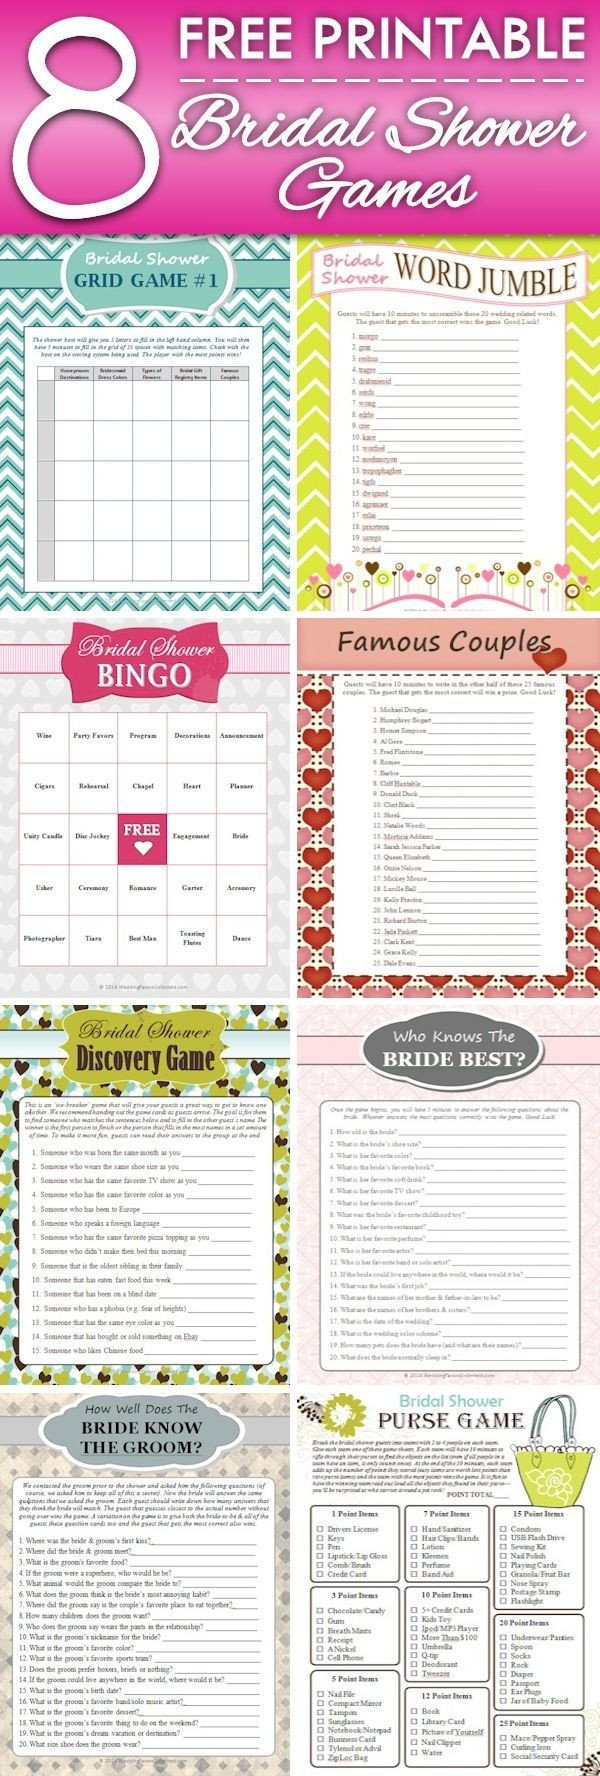 Bridal Shower Checklist Printable 8 Free Printable Bridal Shower Games some Fun